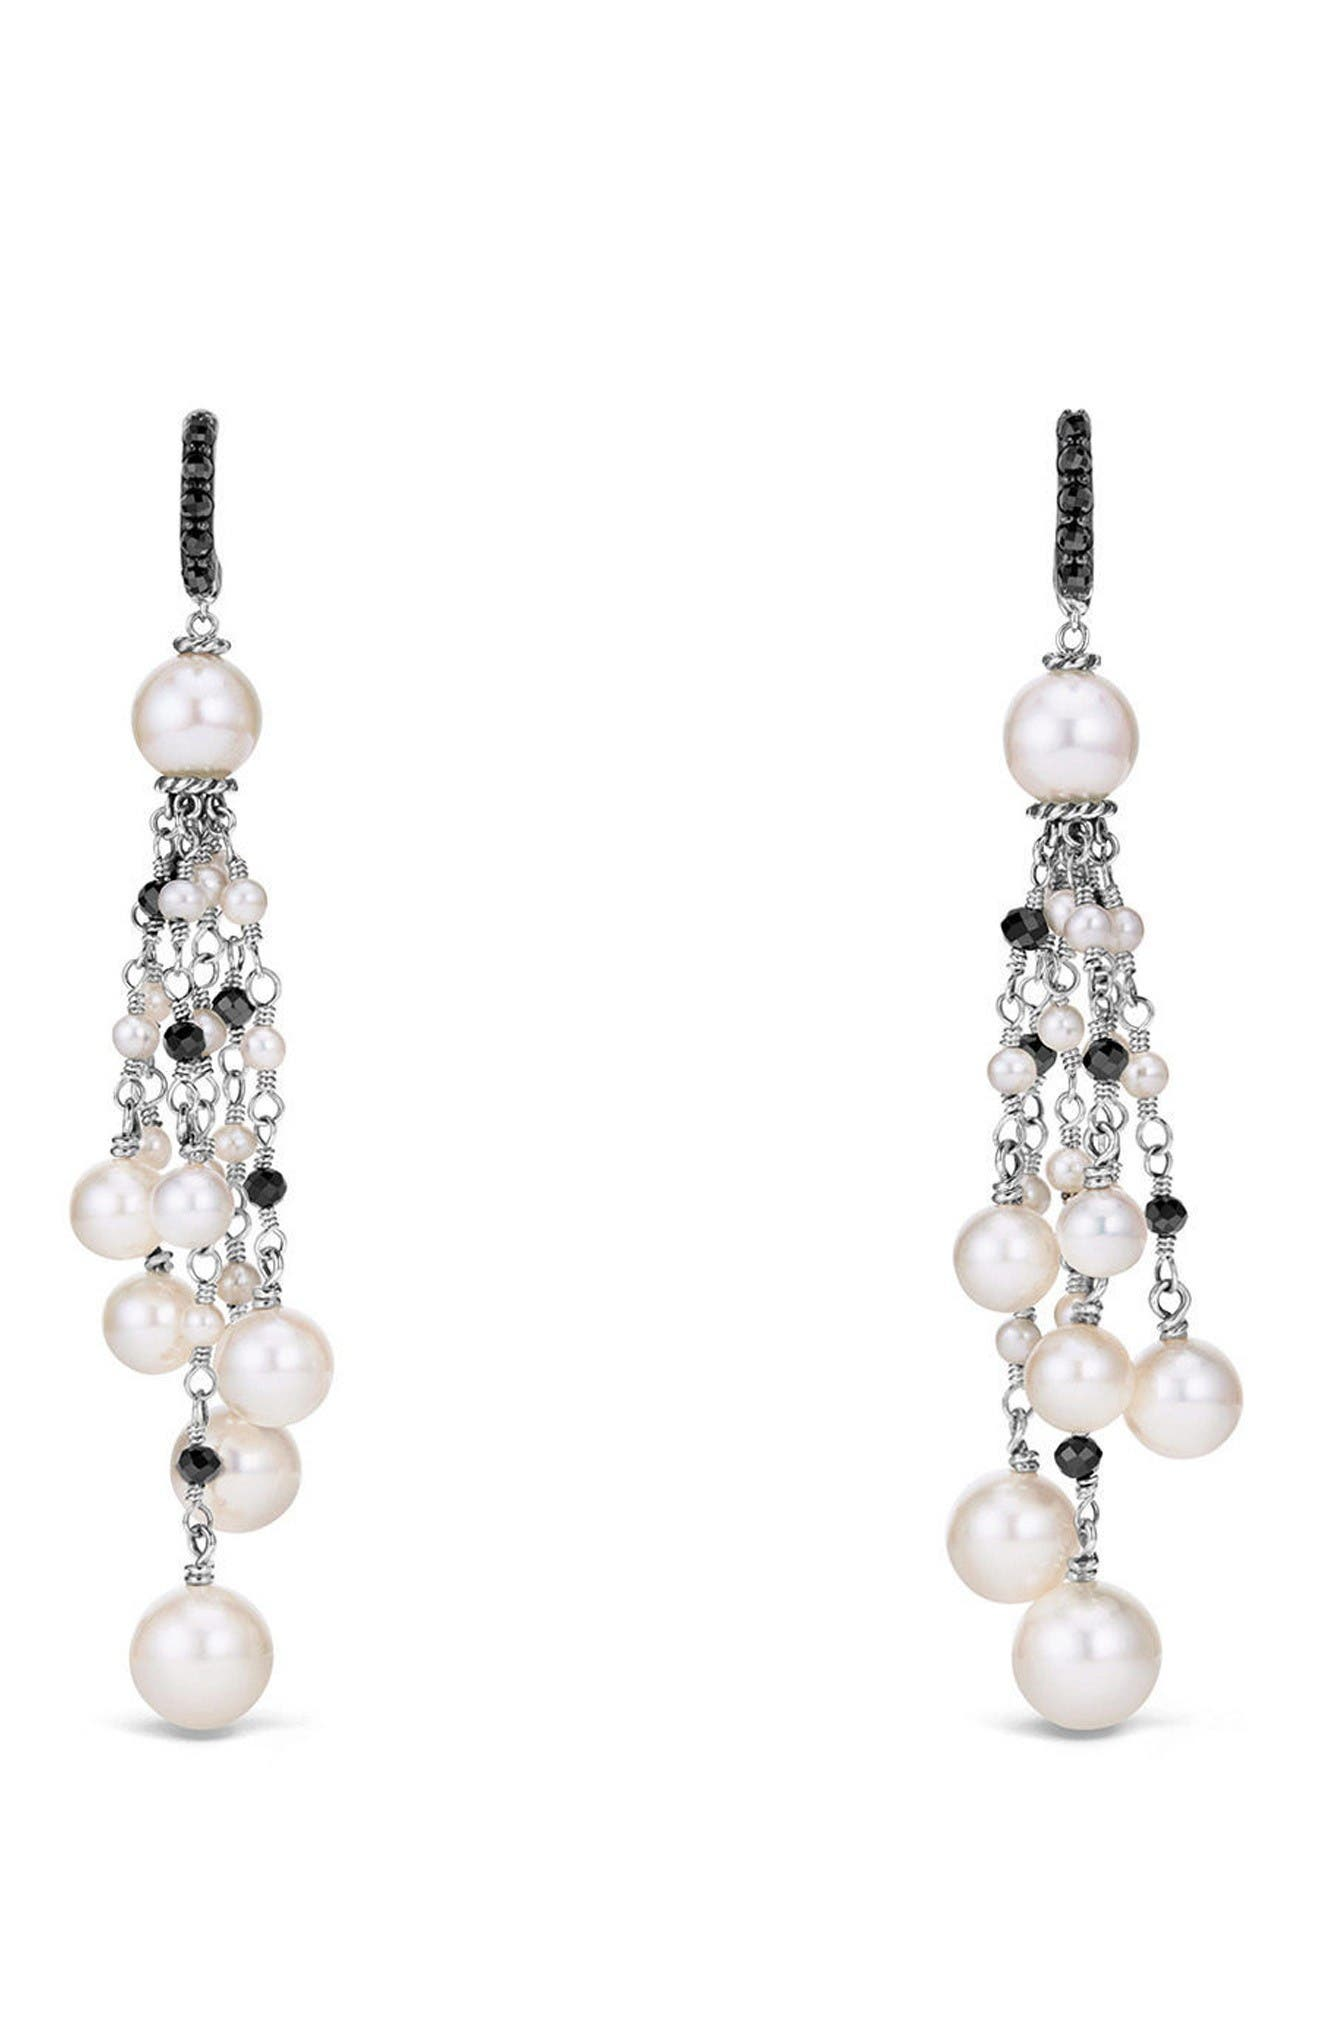 Solari Pearl Fringe Earrings,                         Main,                         color, Pearl/ Black Spinel